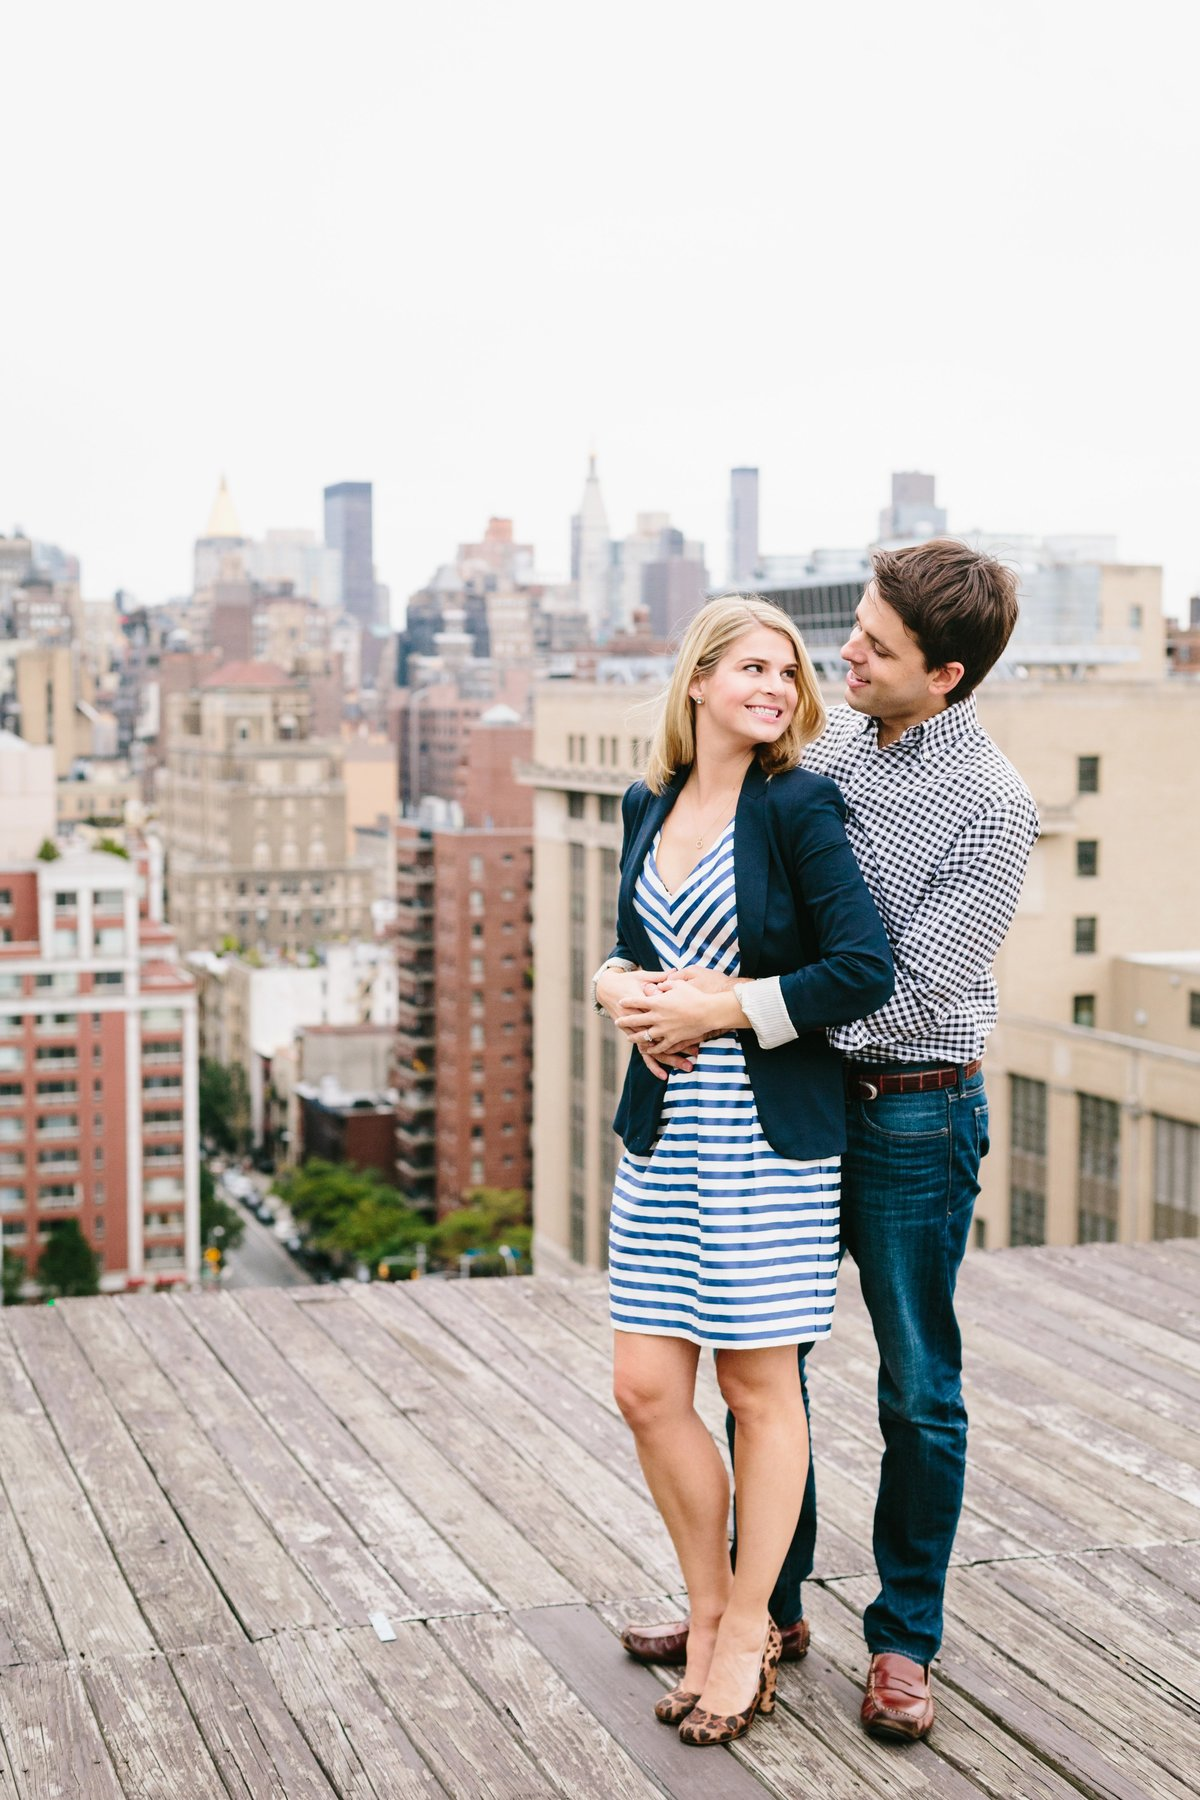 Engagement Photos-Jodee Debes Photography-189